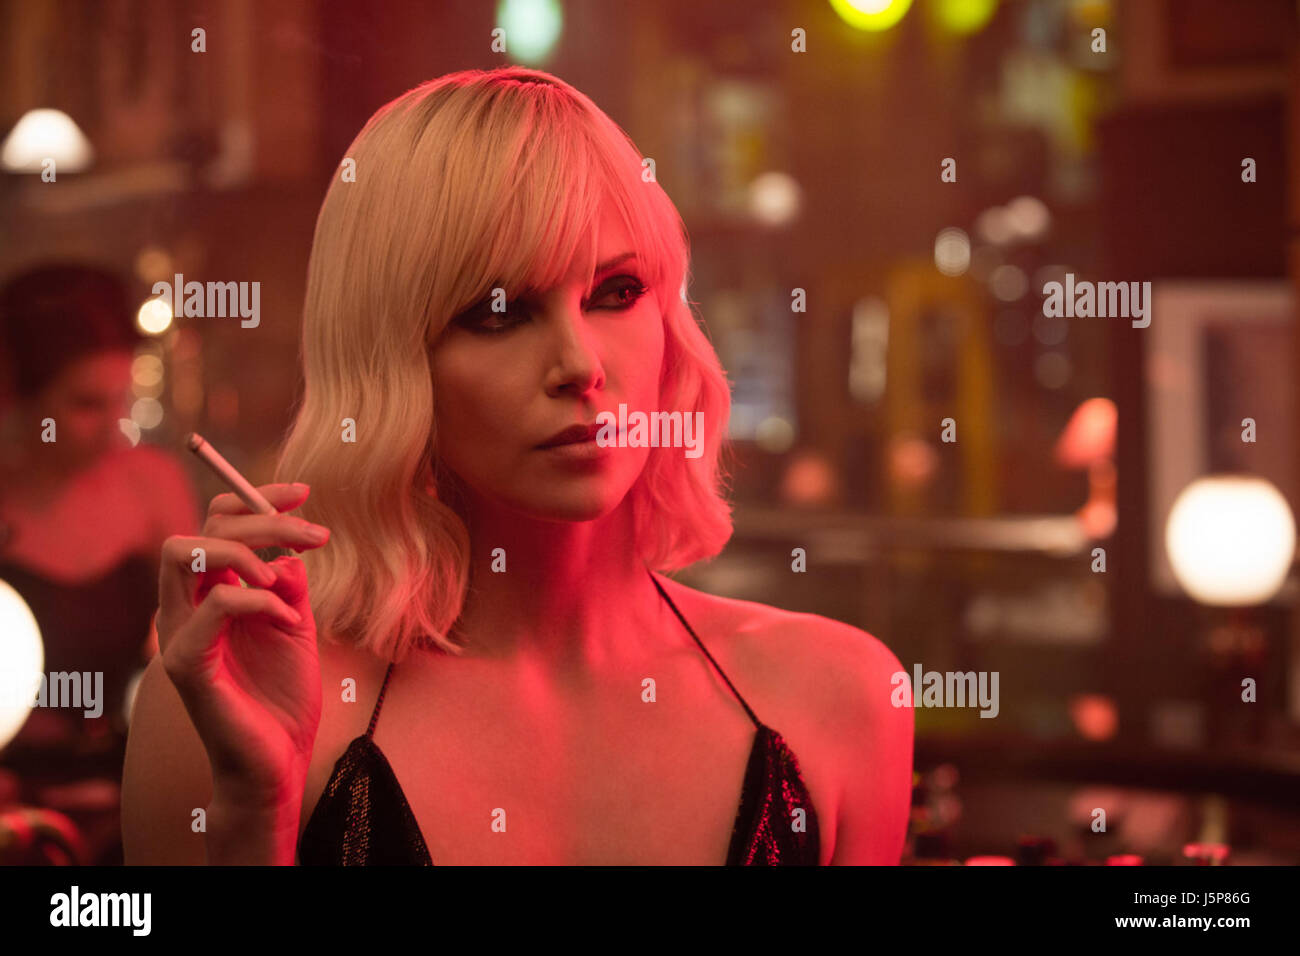 ATOMIC BLONDE (2017)  CHARLIZE THERON  DAVID LEITCH (DIR)  UNIVERSAL PICTURES/MOVIESTORE COLLECTION LTD - Stock Image